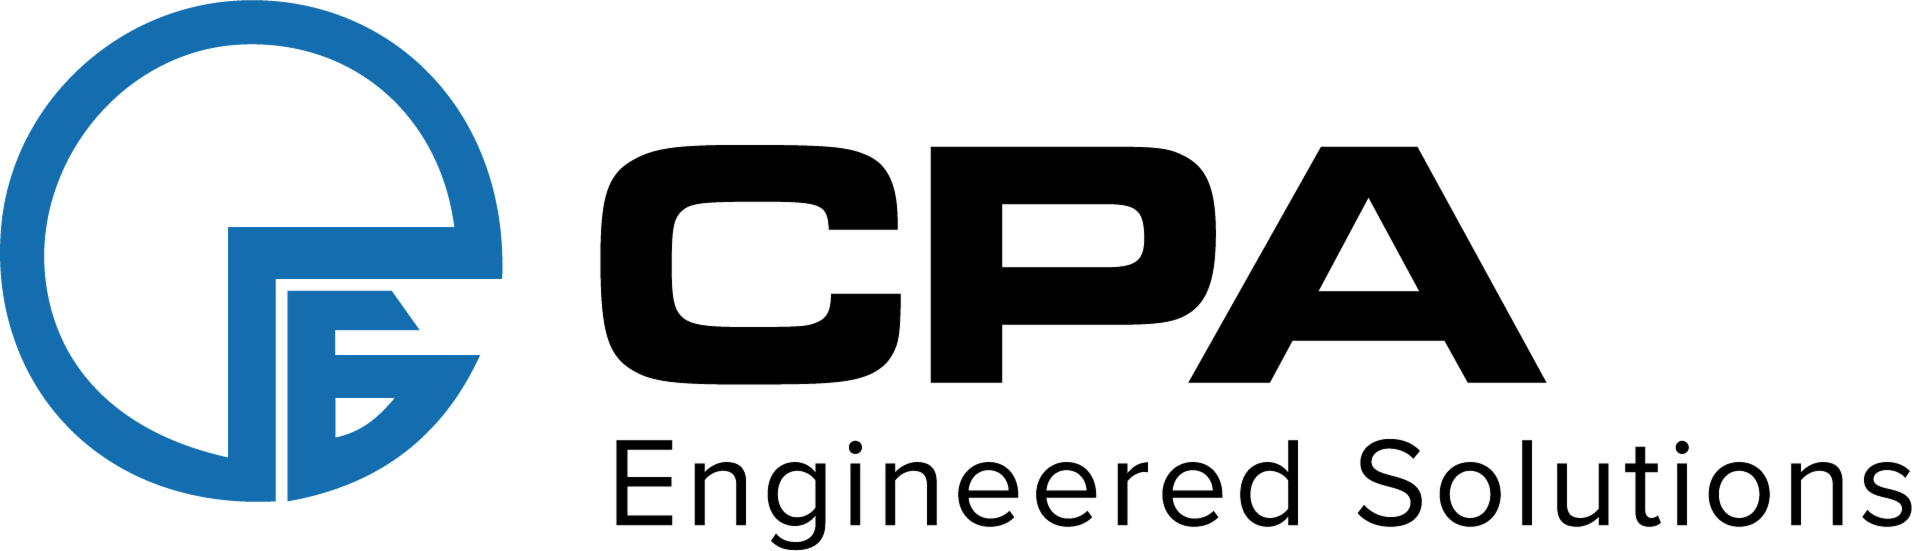 CPA Engineered Solutions Ltd